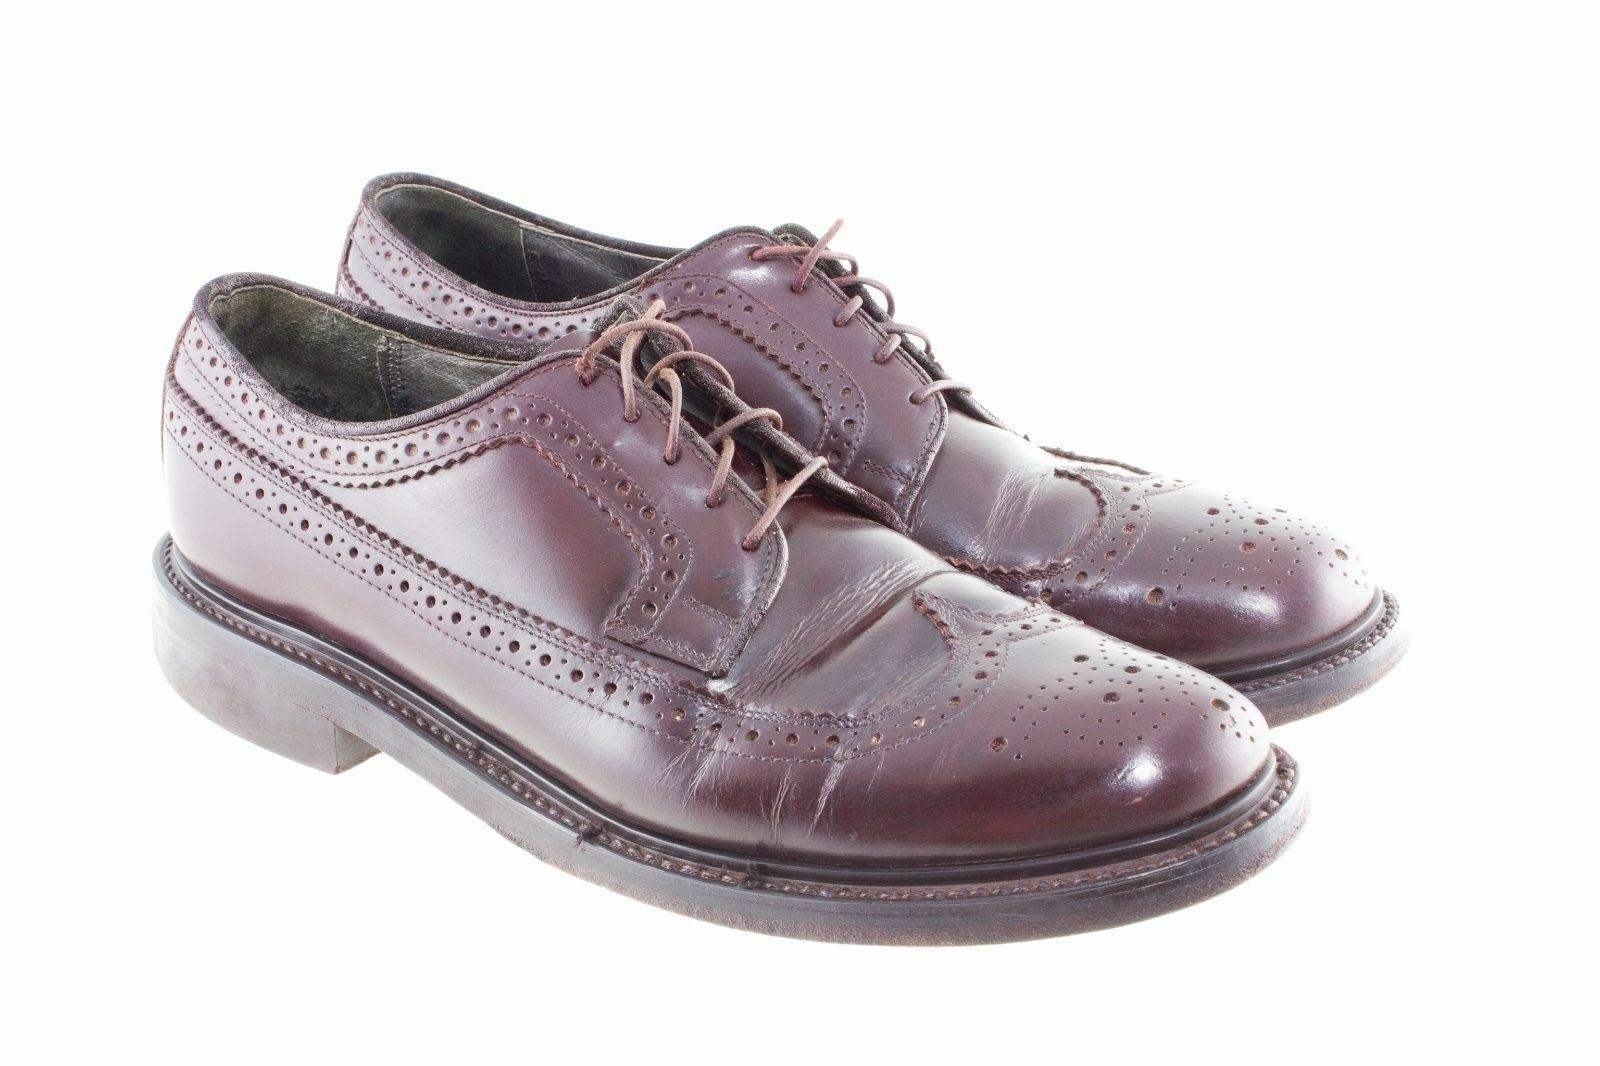 SEARS CORDOVAN LEATHER WINGTIP OXFORDS Uomo SIZE 10 D   STYLE KF 3